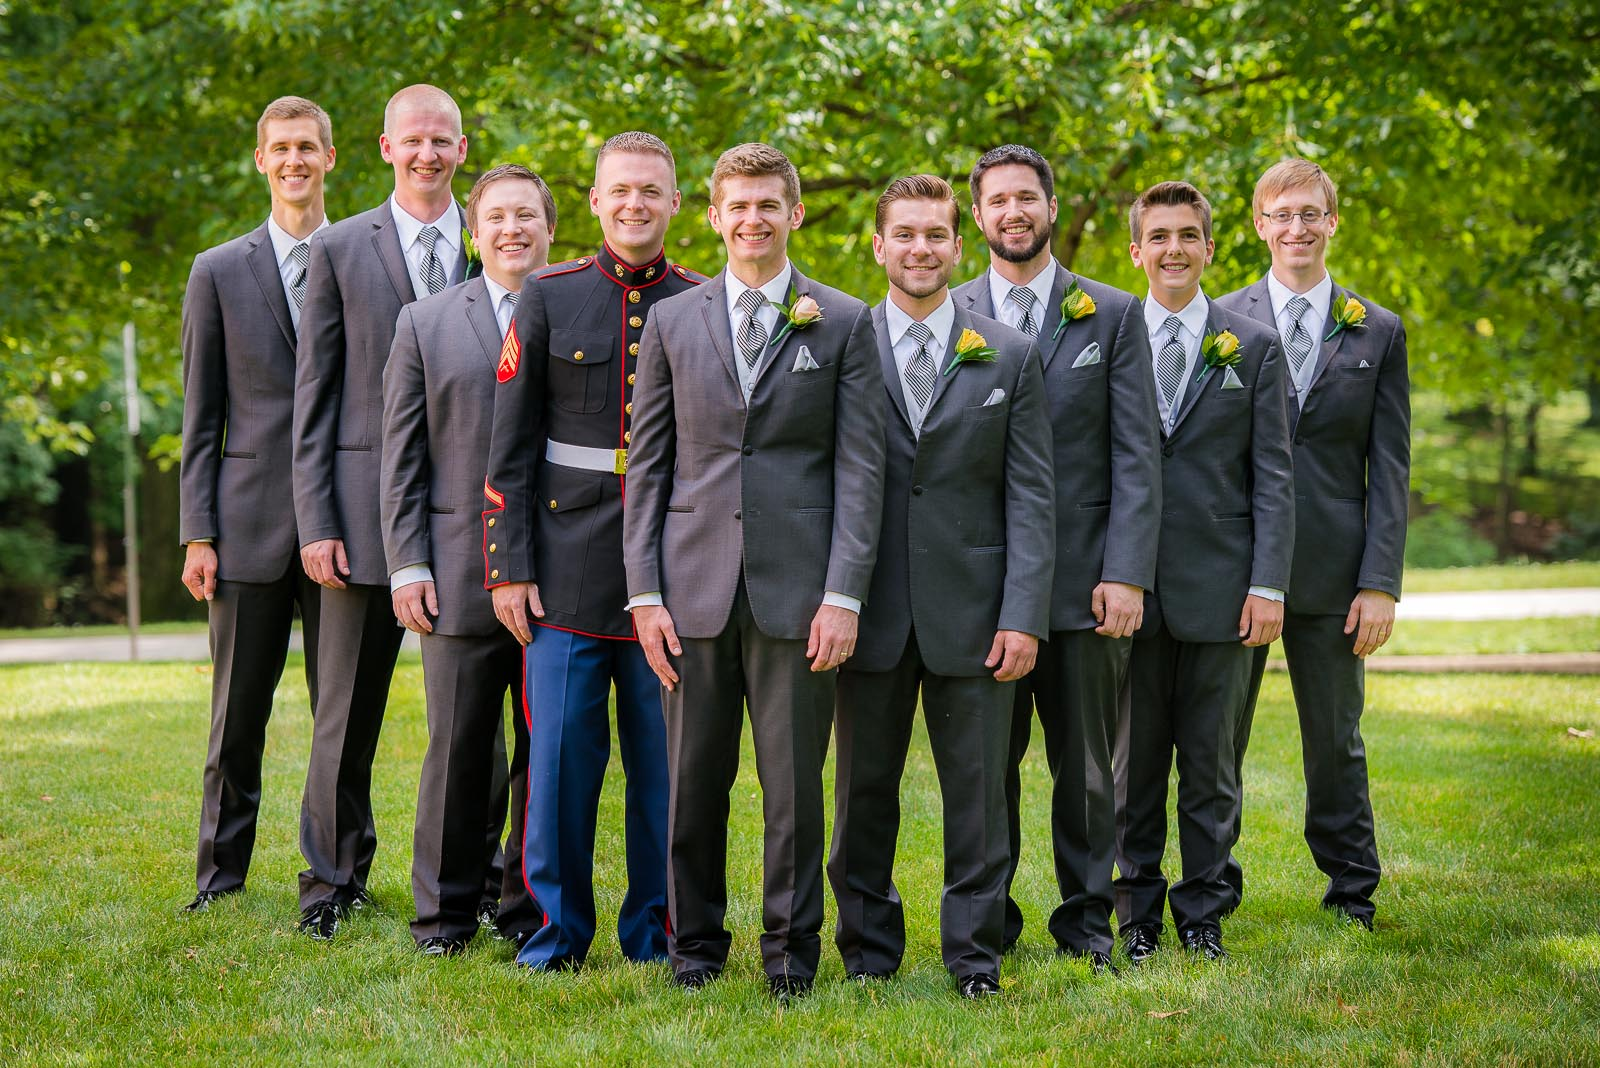 Eric_and_Christy_Photography_Blog_Wedding_Kelly_Michael-23